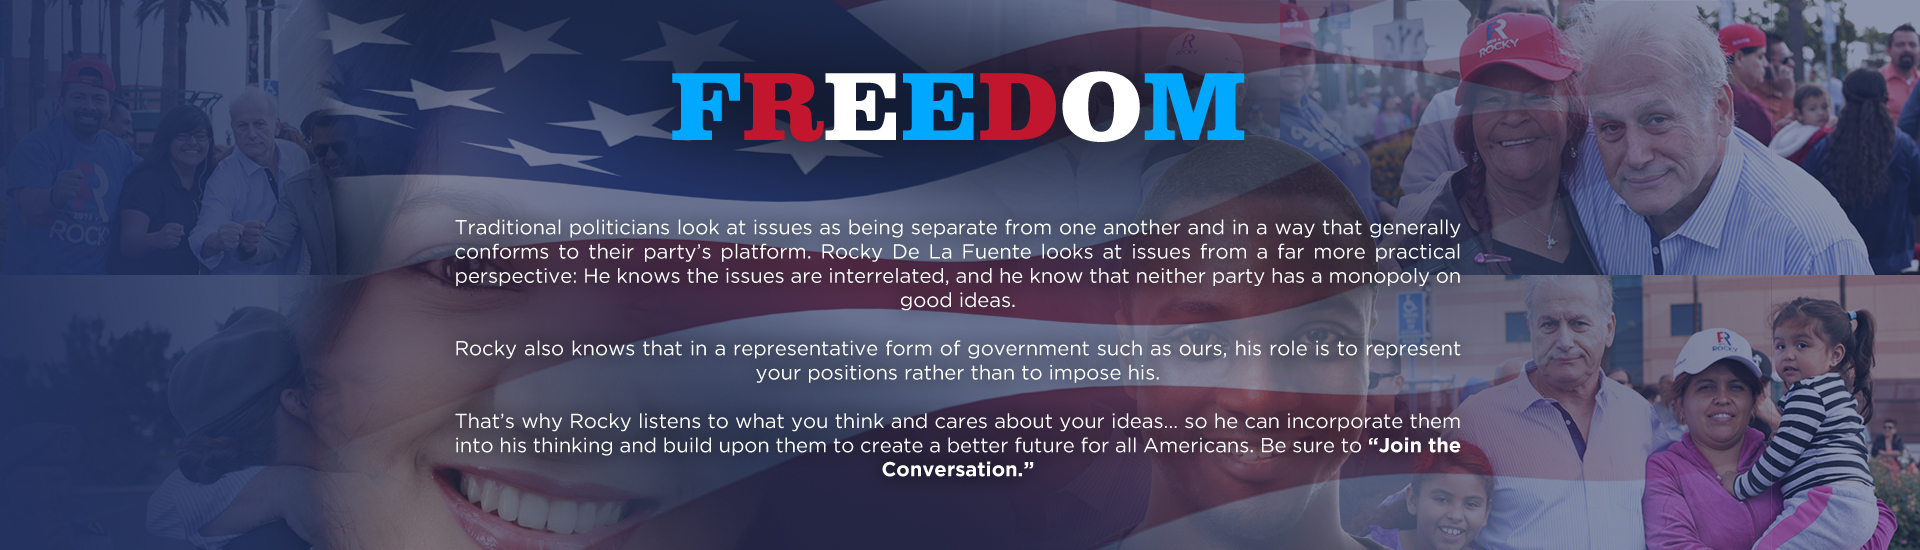 header_img_freedom_issues-1